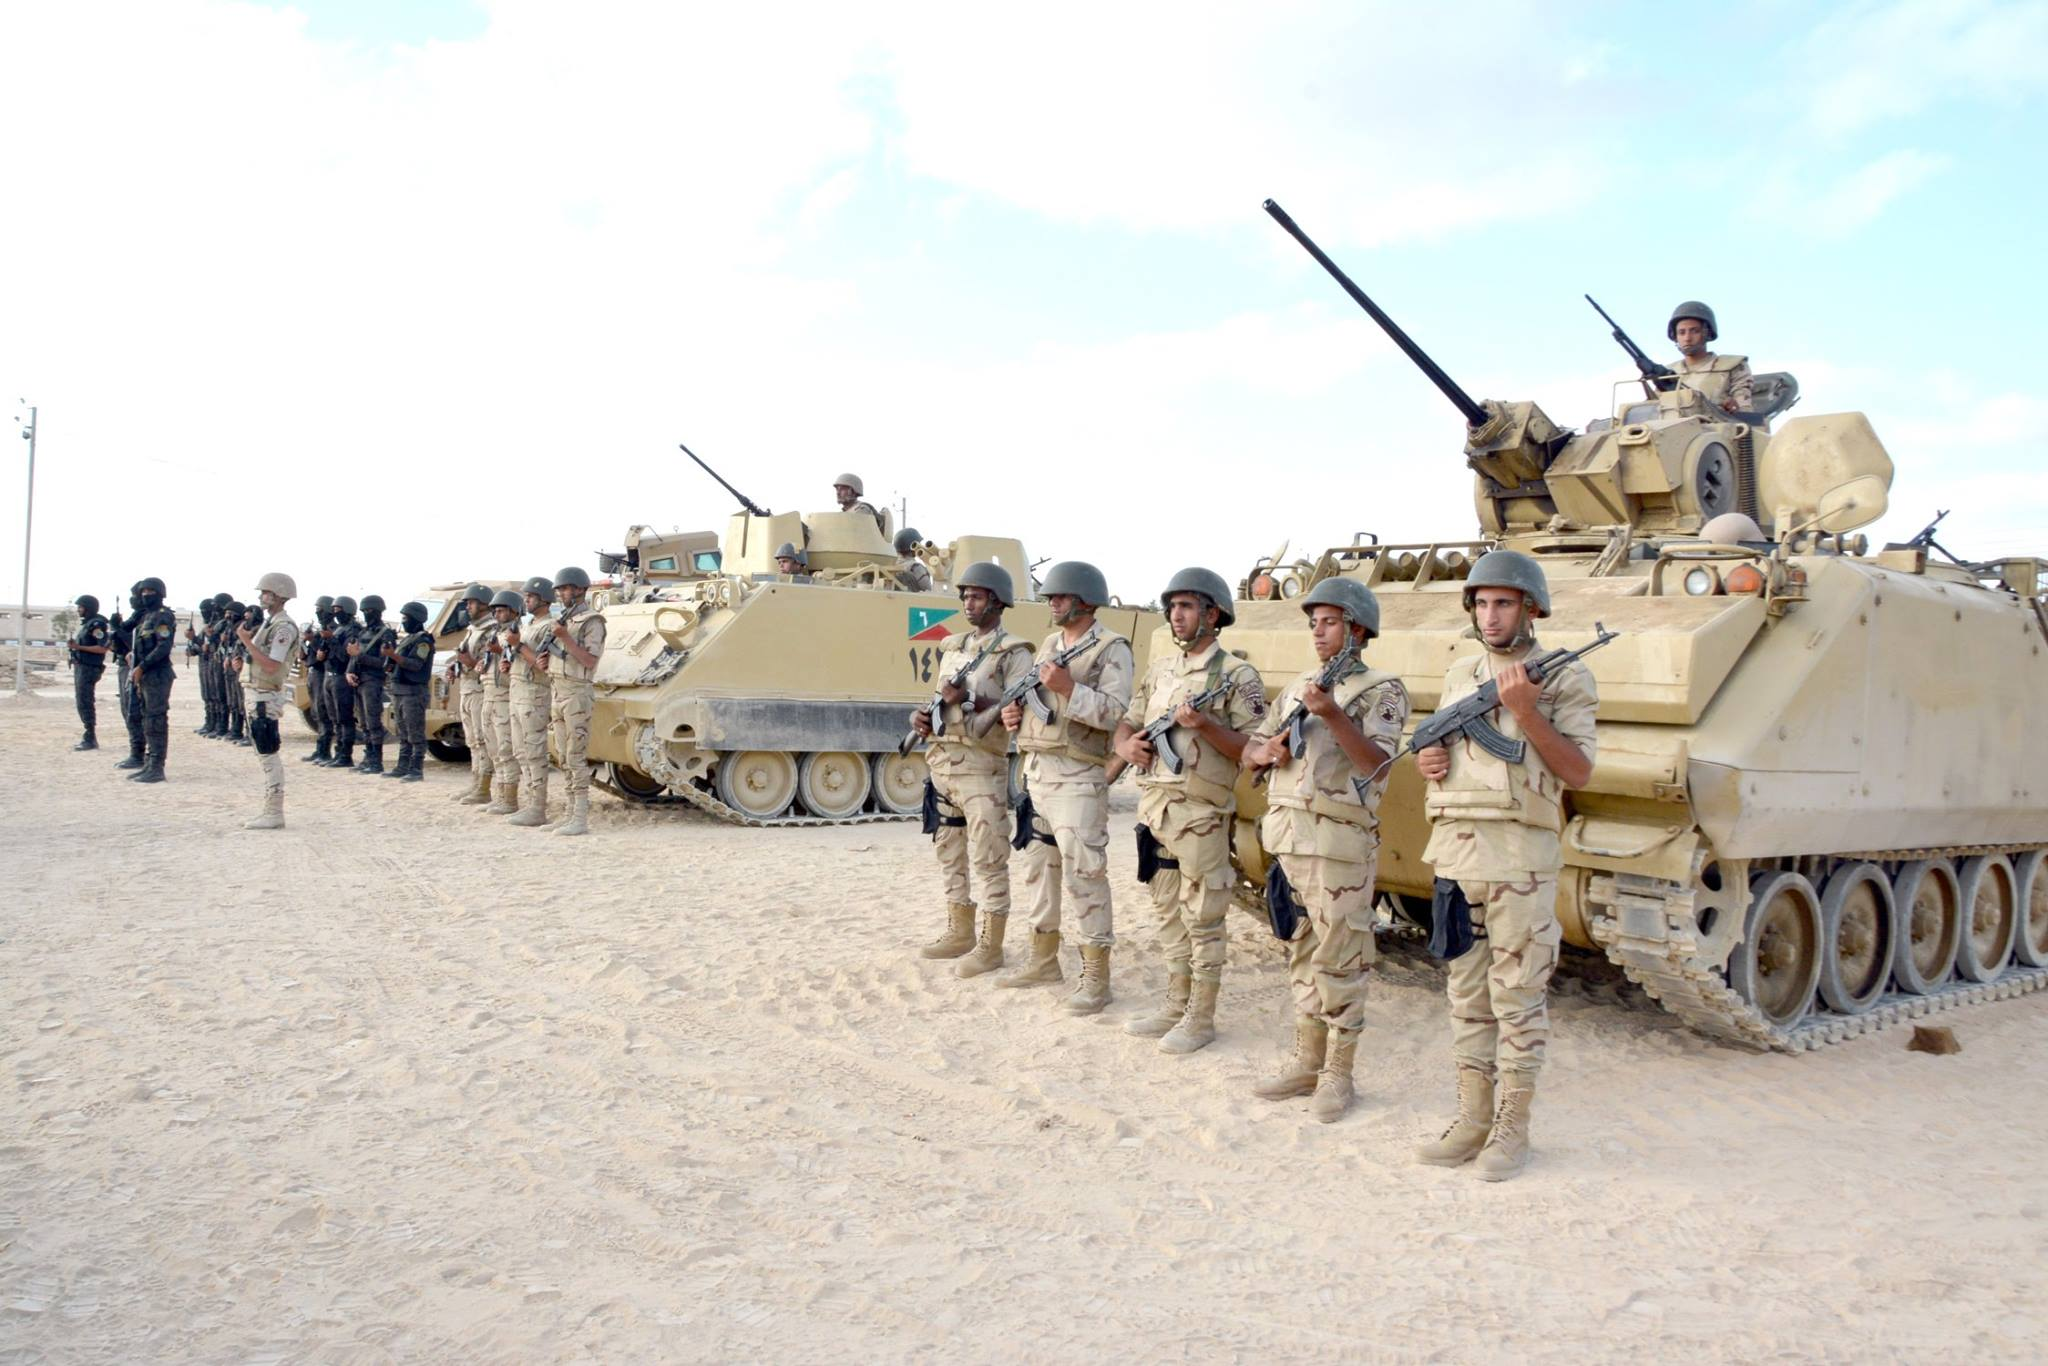 Egypt's military prepares ahead of new operations against militants in Sinai